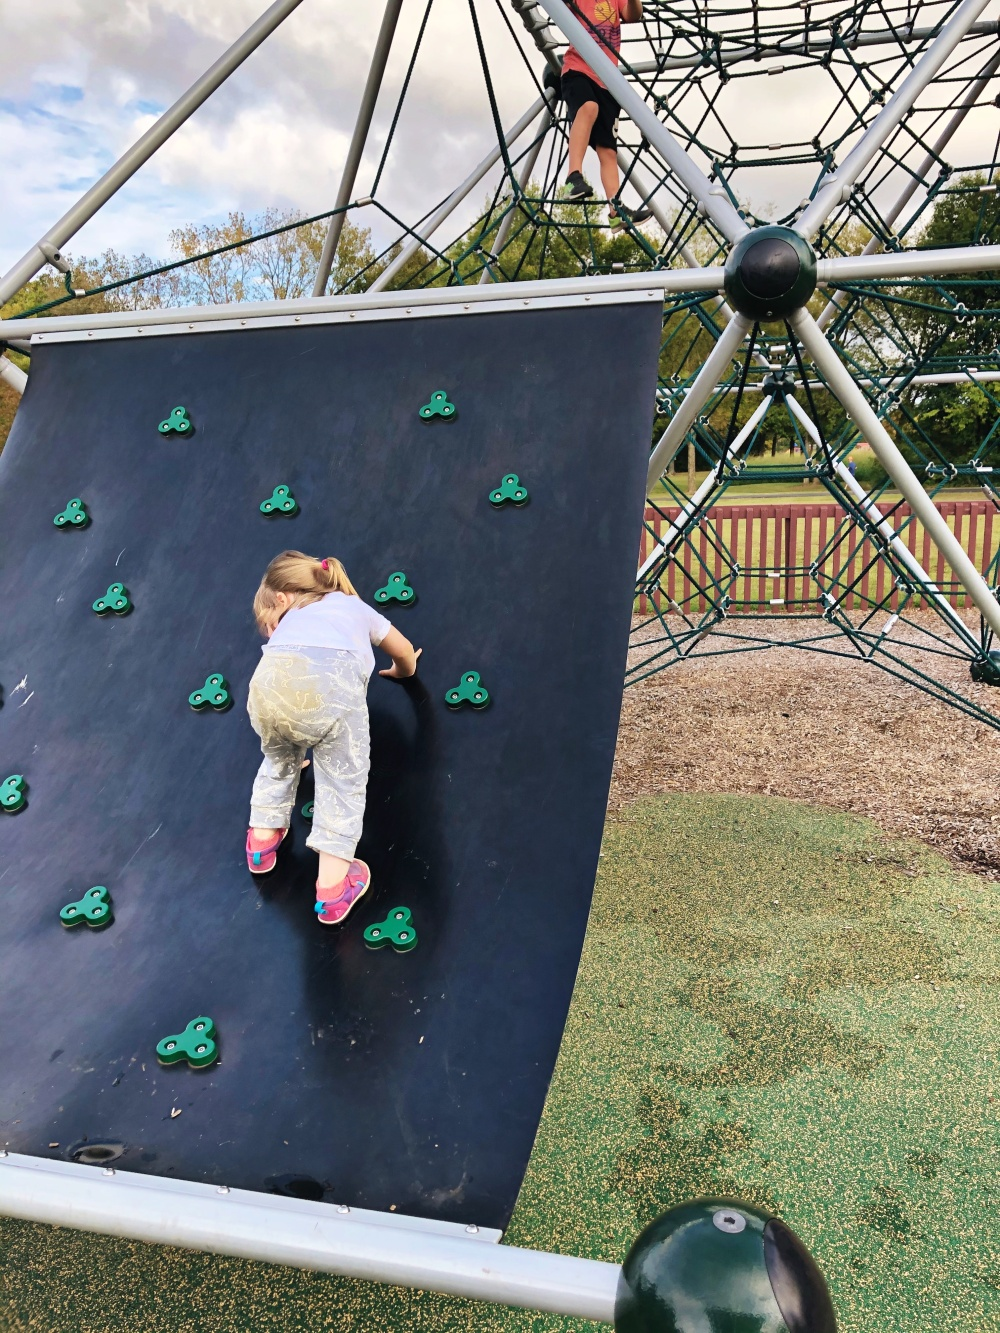 toddler scaling parkour wall near rope climbing structure at Don Fox Community Park in Lebanon, TN